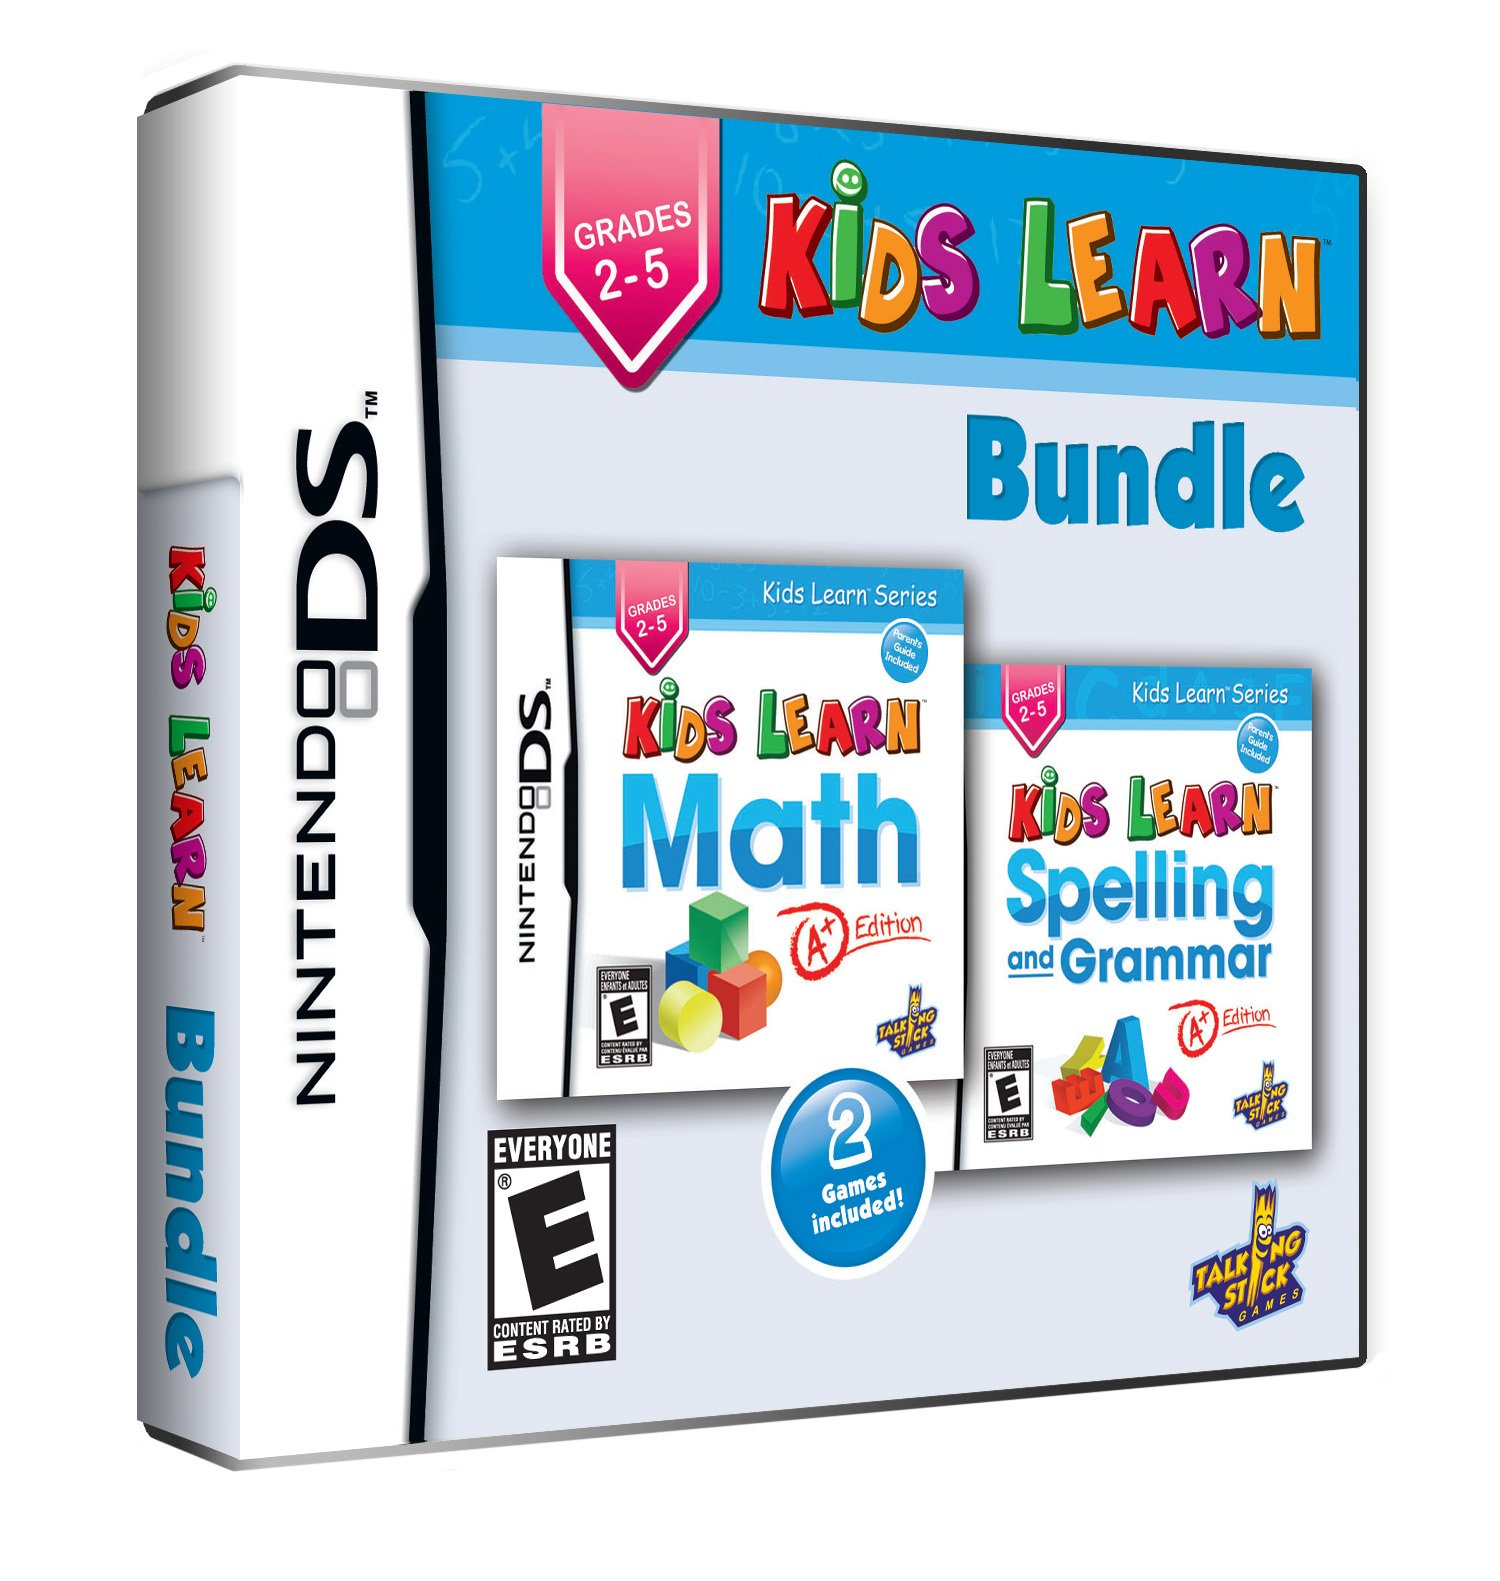 Kids Learn Bundle: Math and Spelling - Grades 2 to 5 by Talking Stick Games